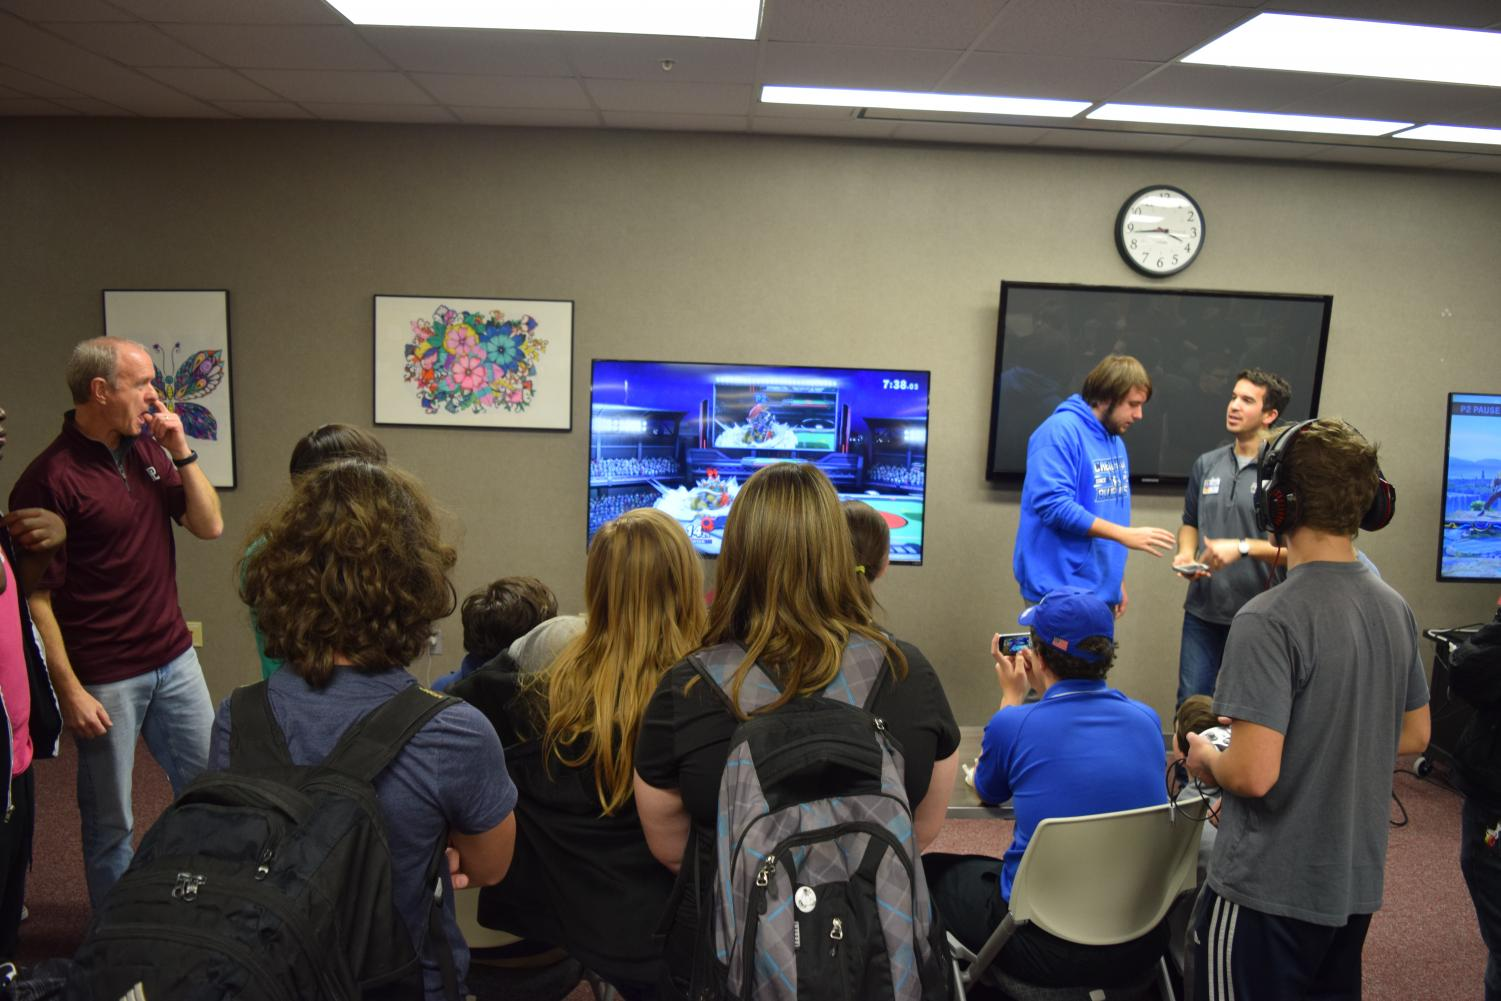 Members of the esports club watch in excitement as two players battle it out in a Super Smash Brothers tournament. The esports club was founded last year following the club creation steps.